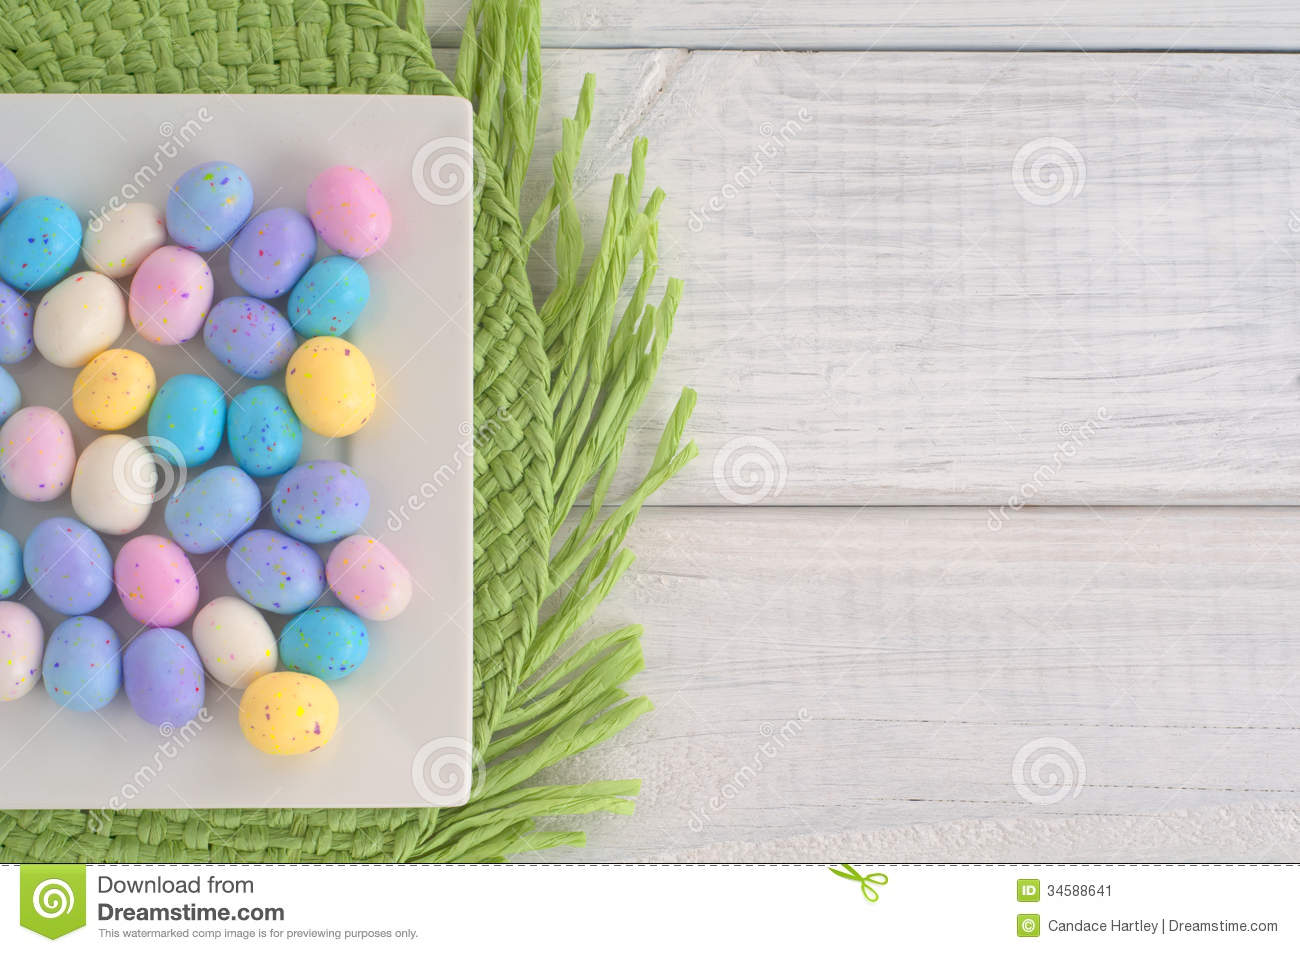 Easter egg candy on Square Dish on Green Placemat on White Wood Boards as Background